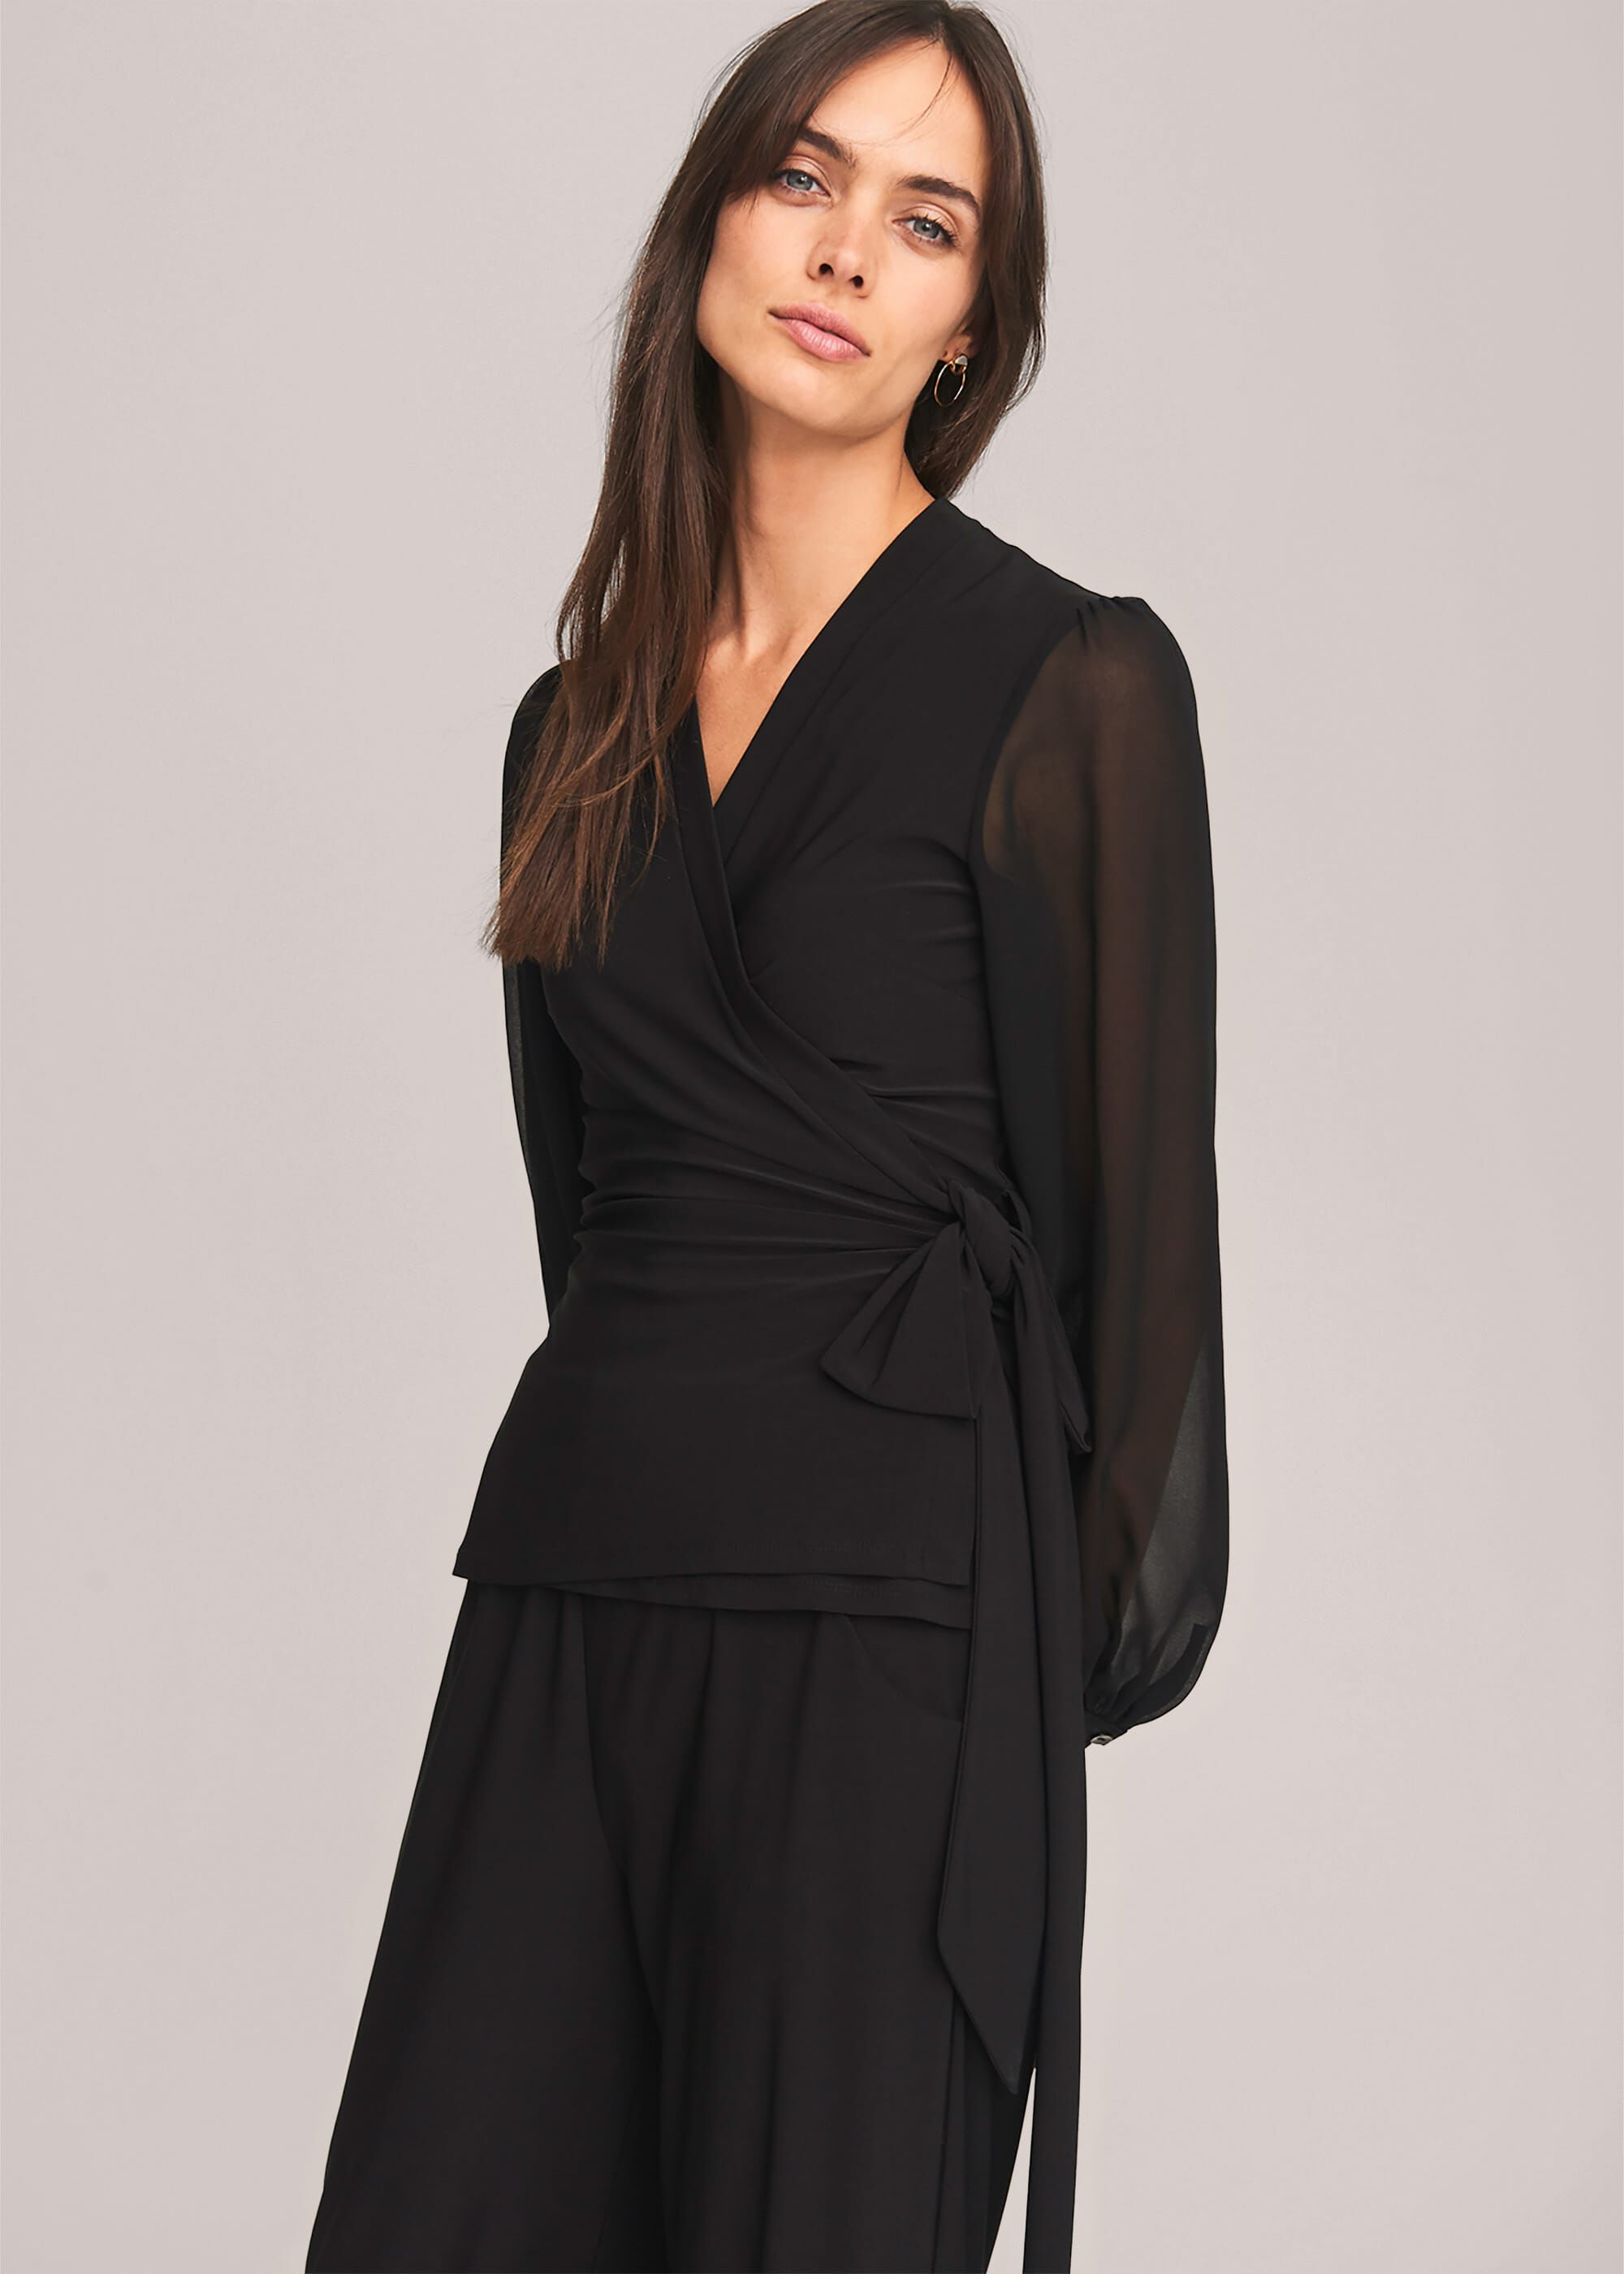 Phase Eight Corinne Jersey Wrap Top, Black, Blouse